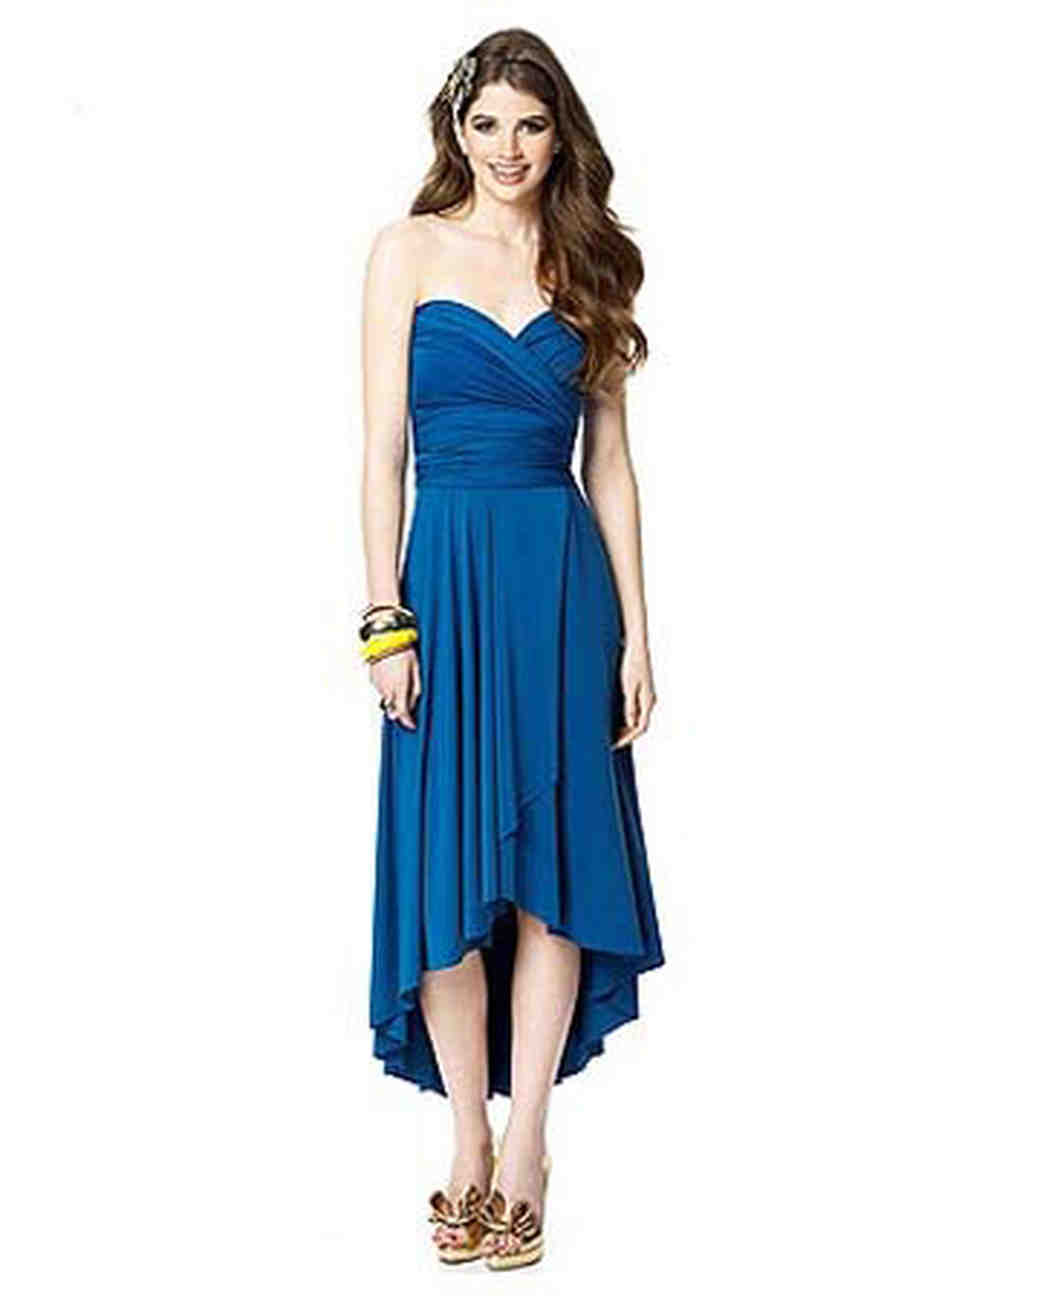 dessy-group-inspiration-twist-dress-9.jpg